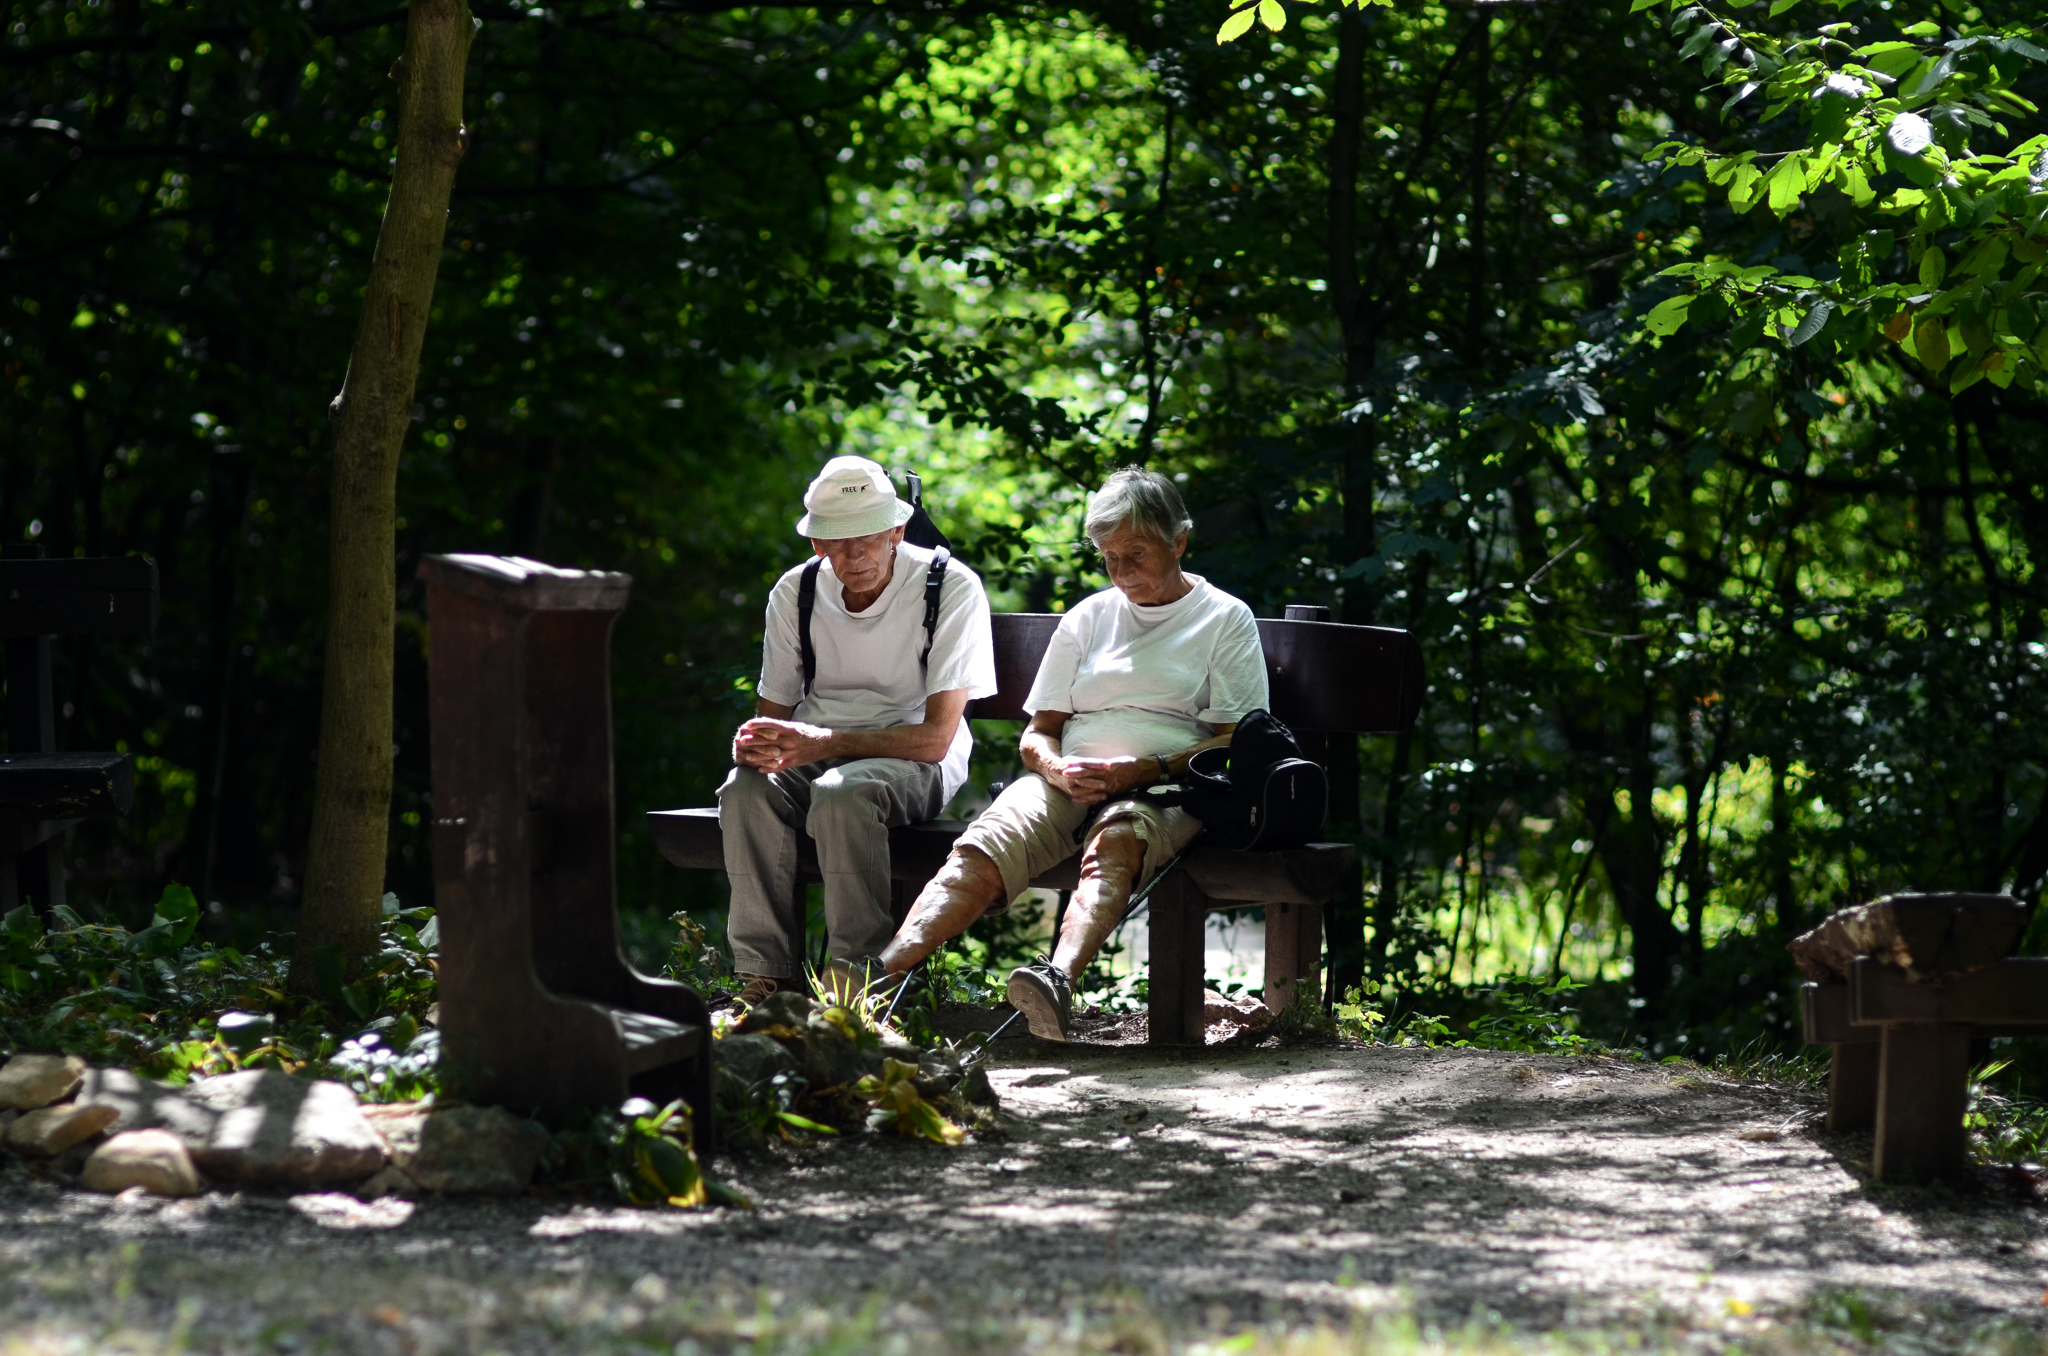 Old Couple by albertsphotos